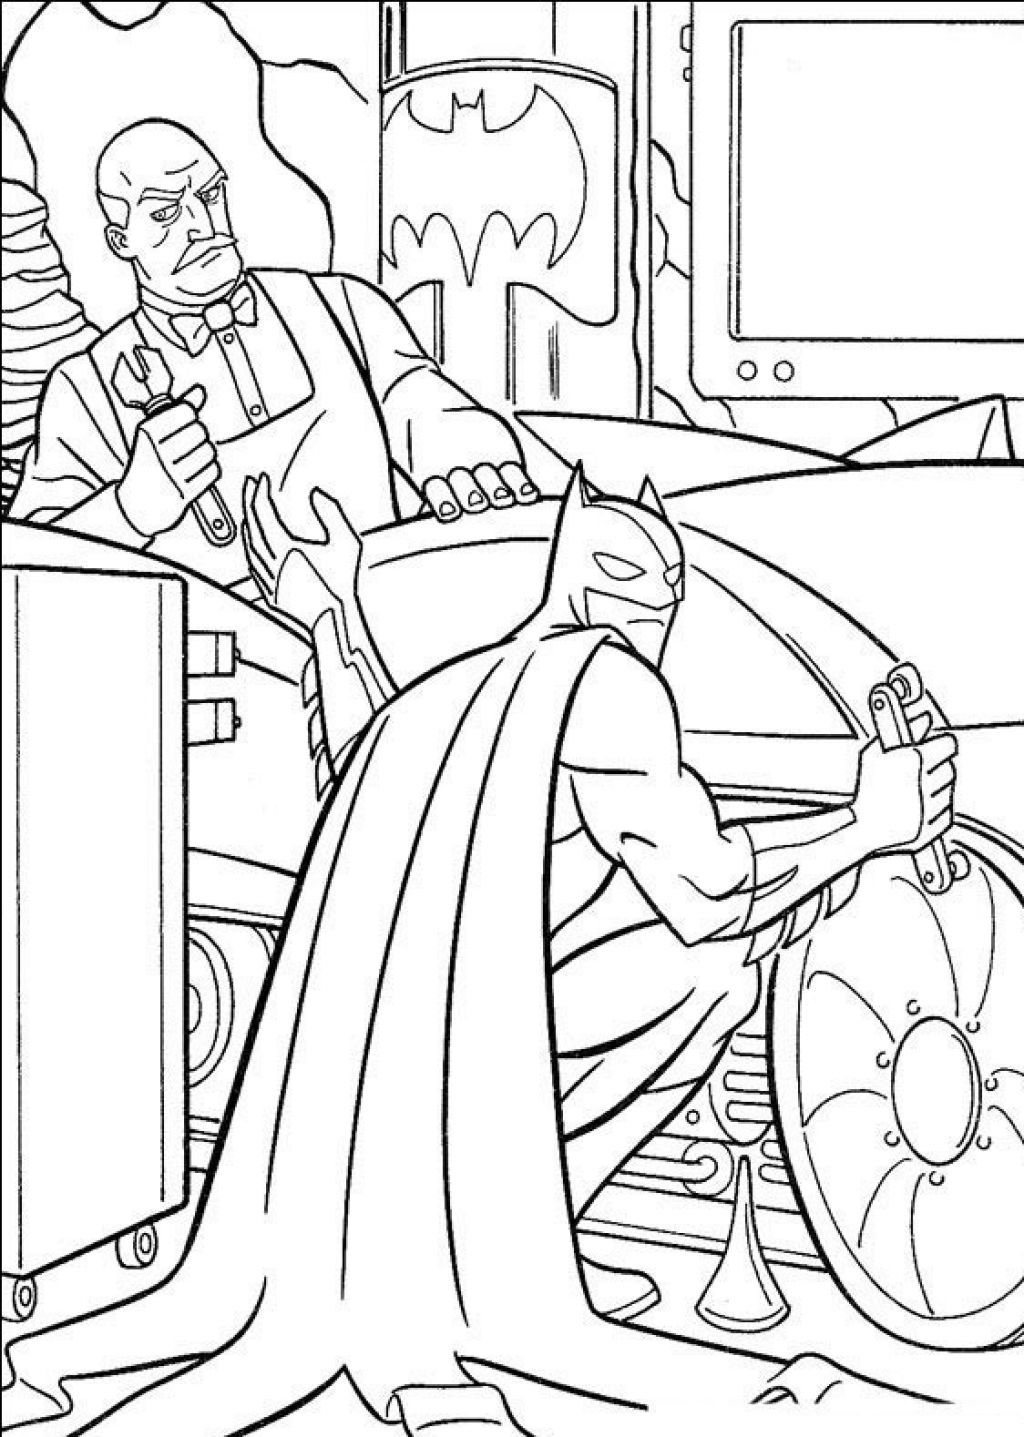 Batman Coloring Page Inspirational Free Printable Batman Coloring Pages For Kids Of 46